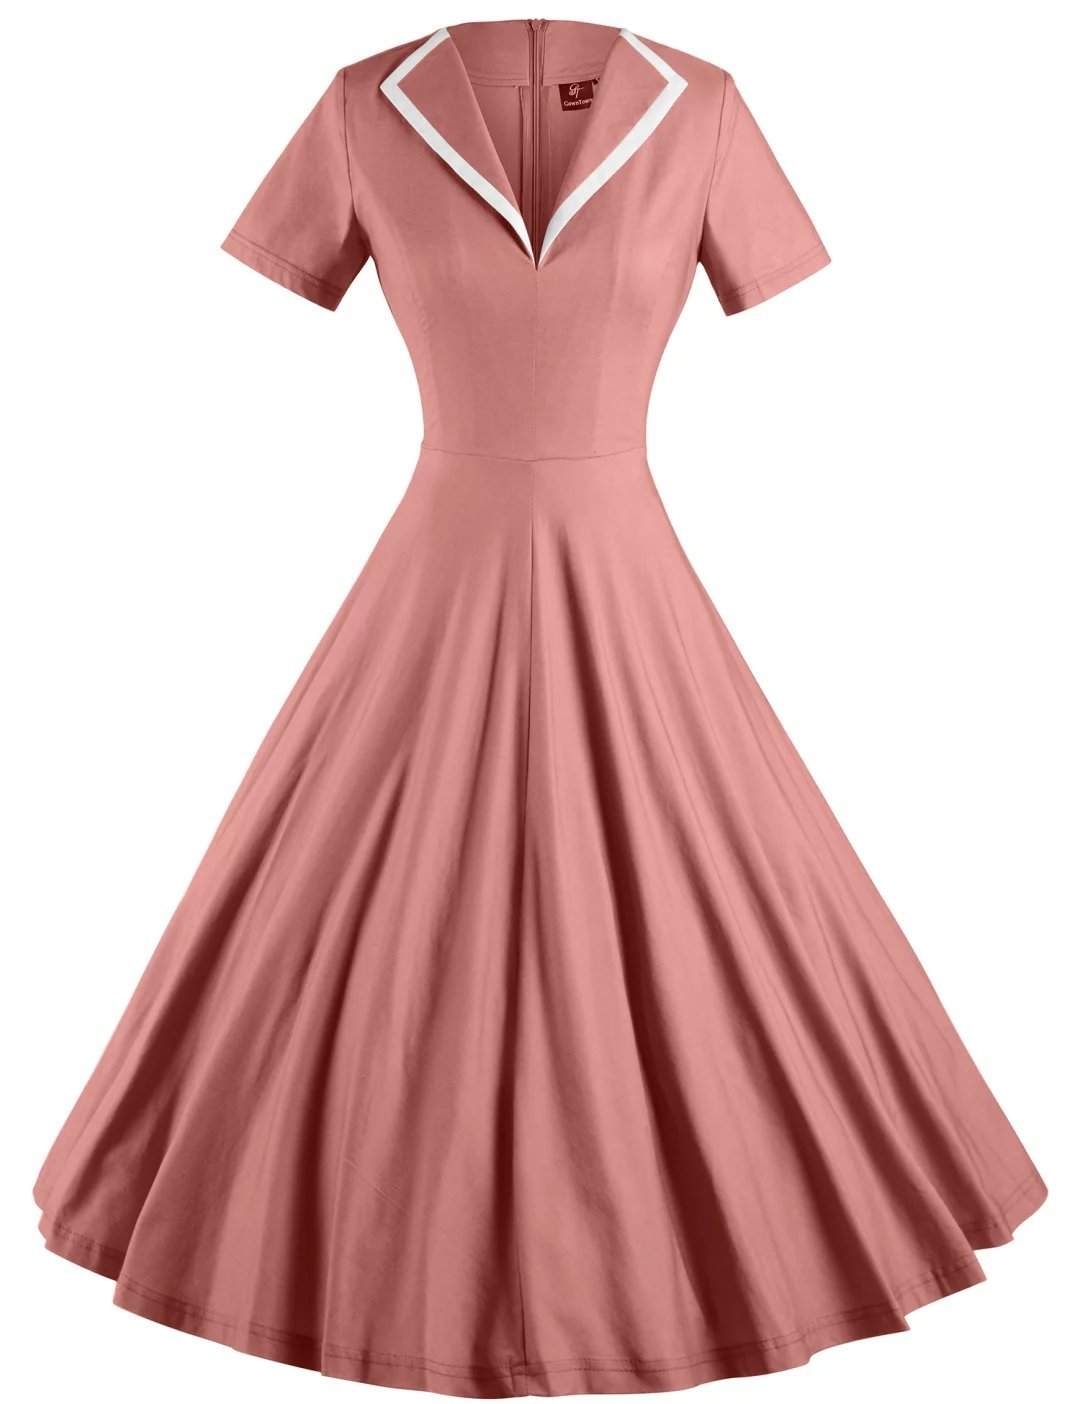 GownTown Women's 1950s Retro Vintage V-Neck Party Swing Dress